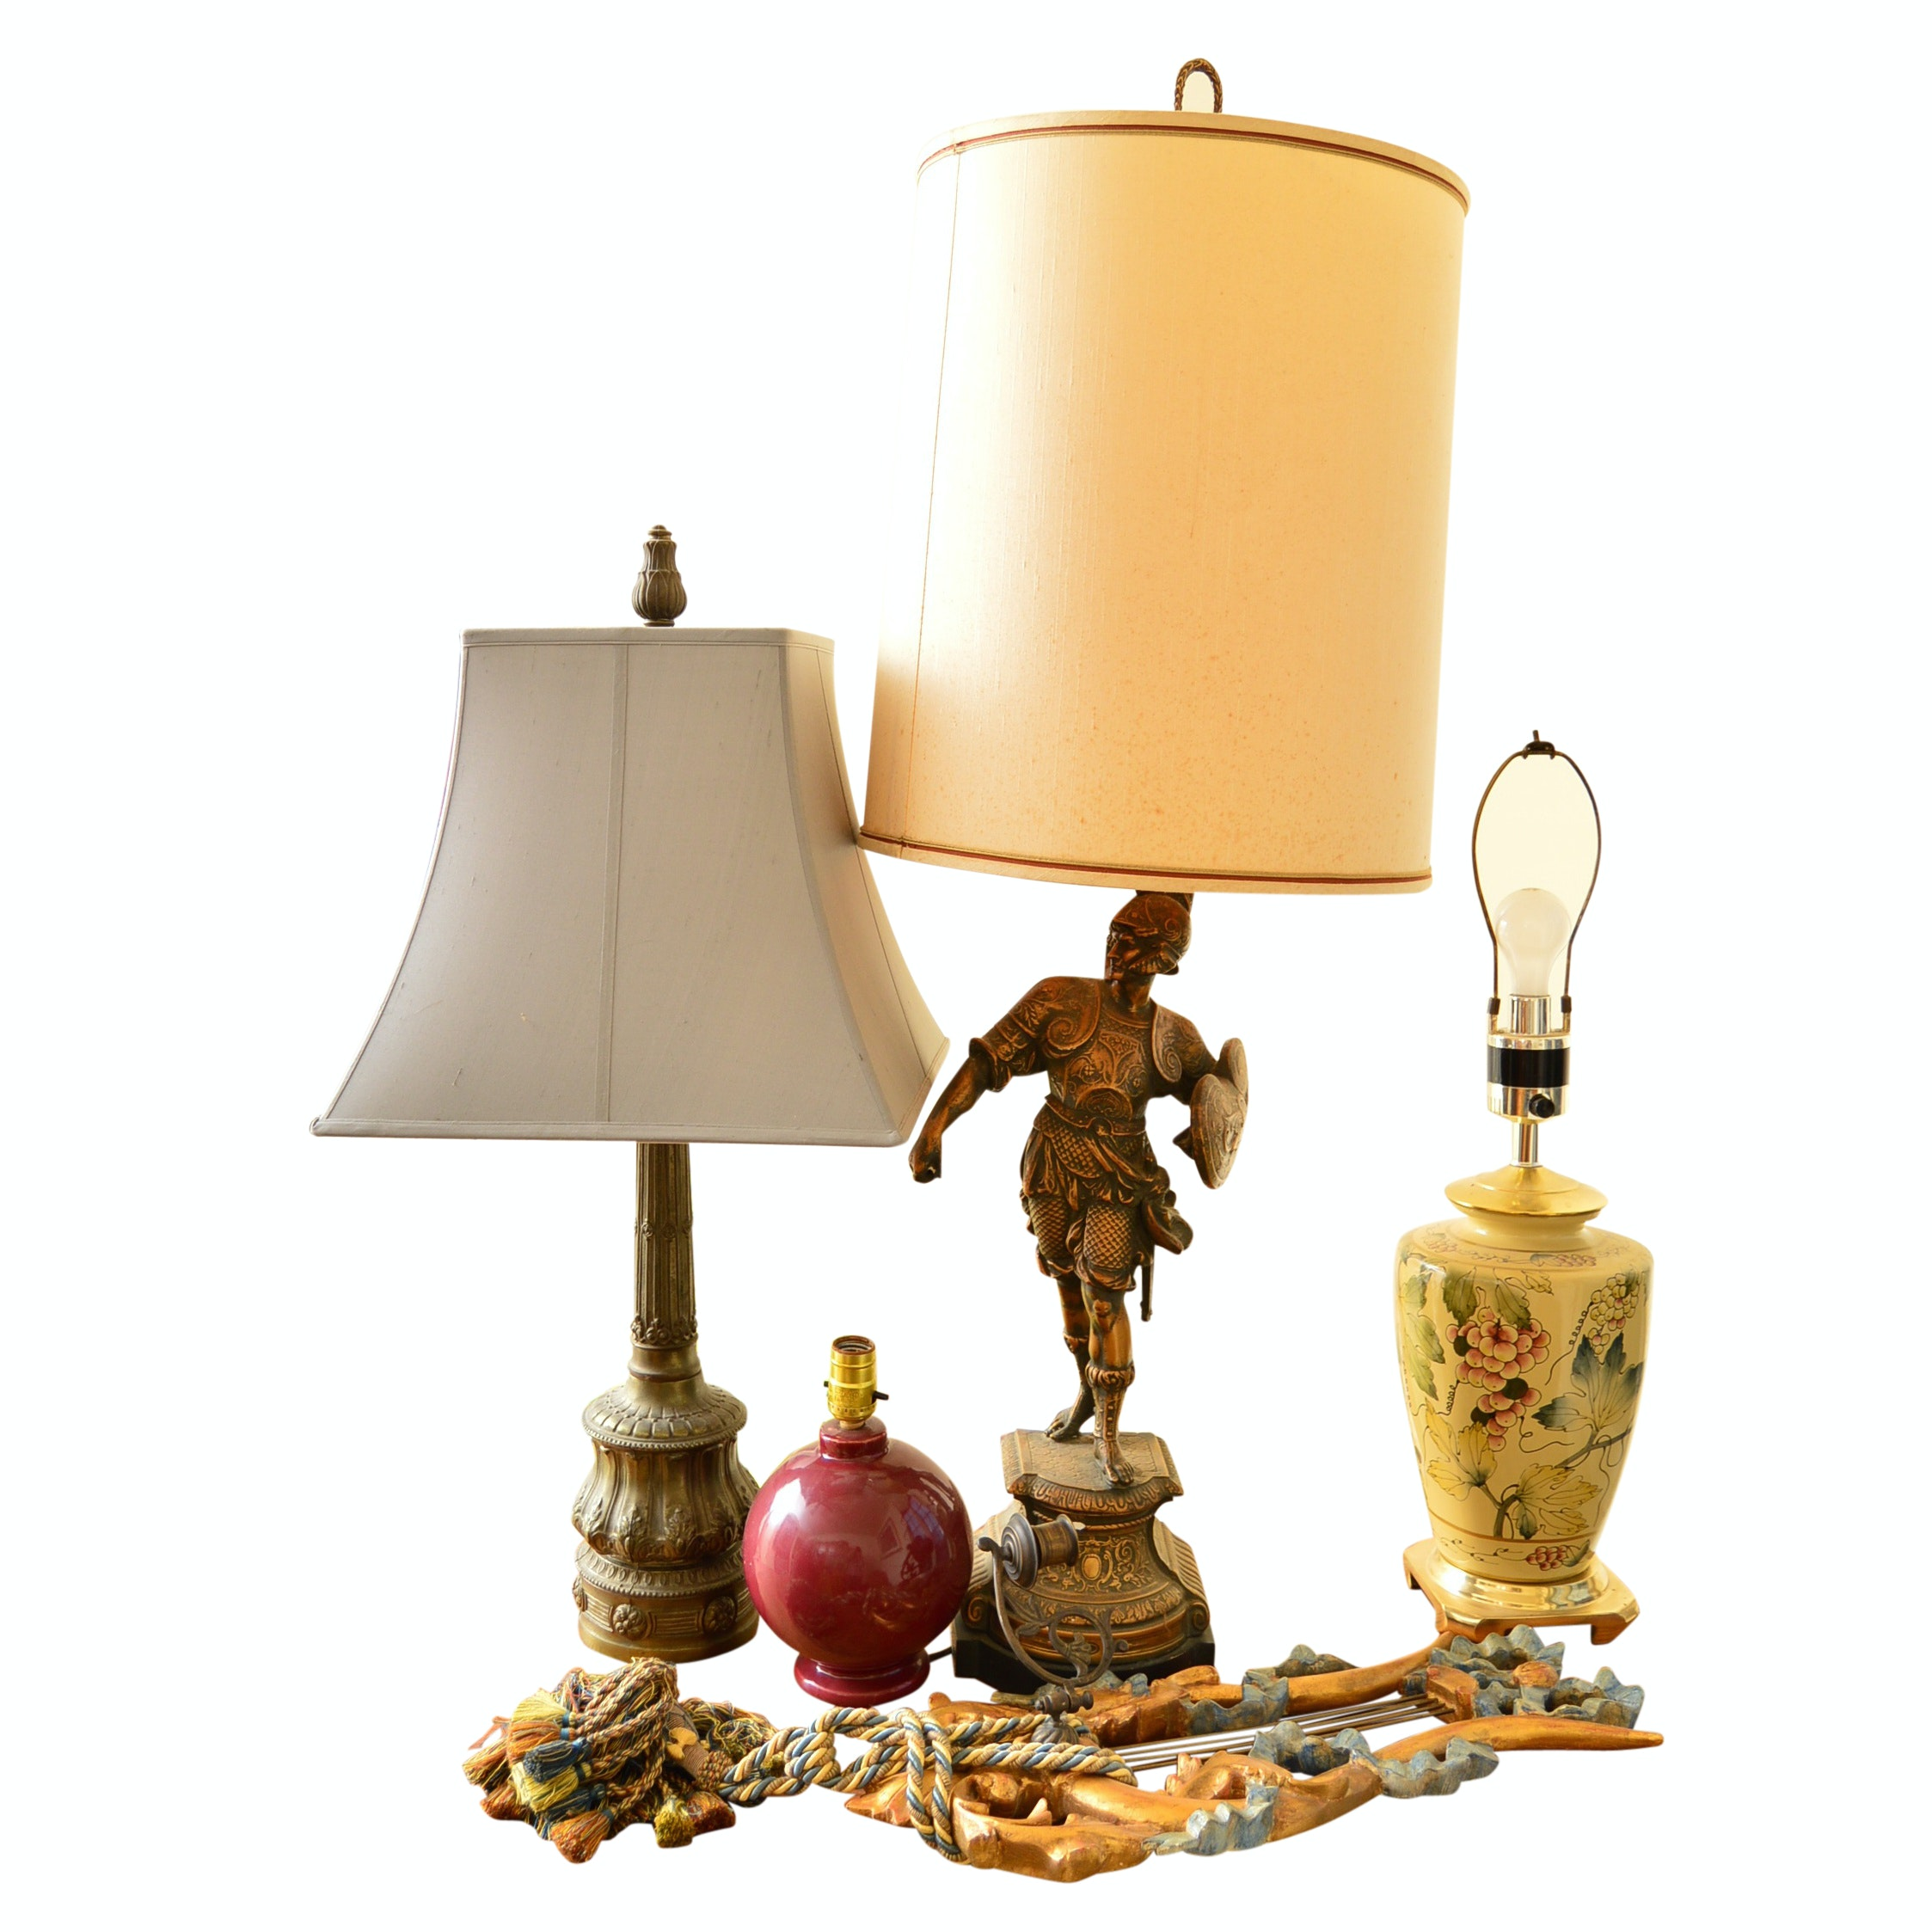 Group of Table Lamps and Wall Decor/Hat Rack